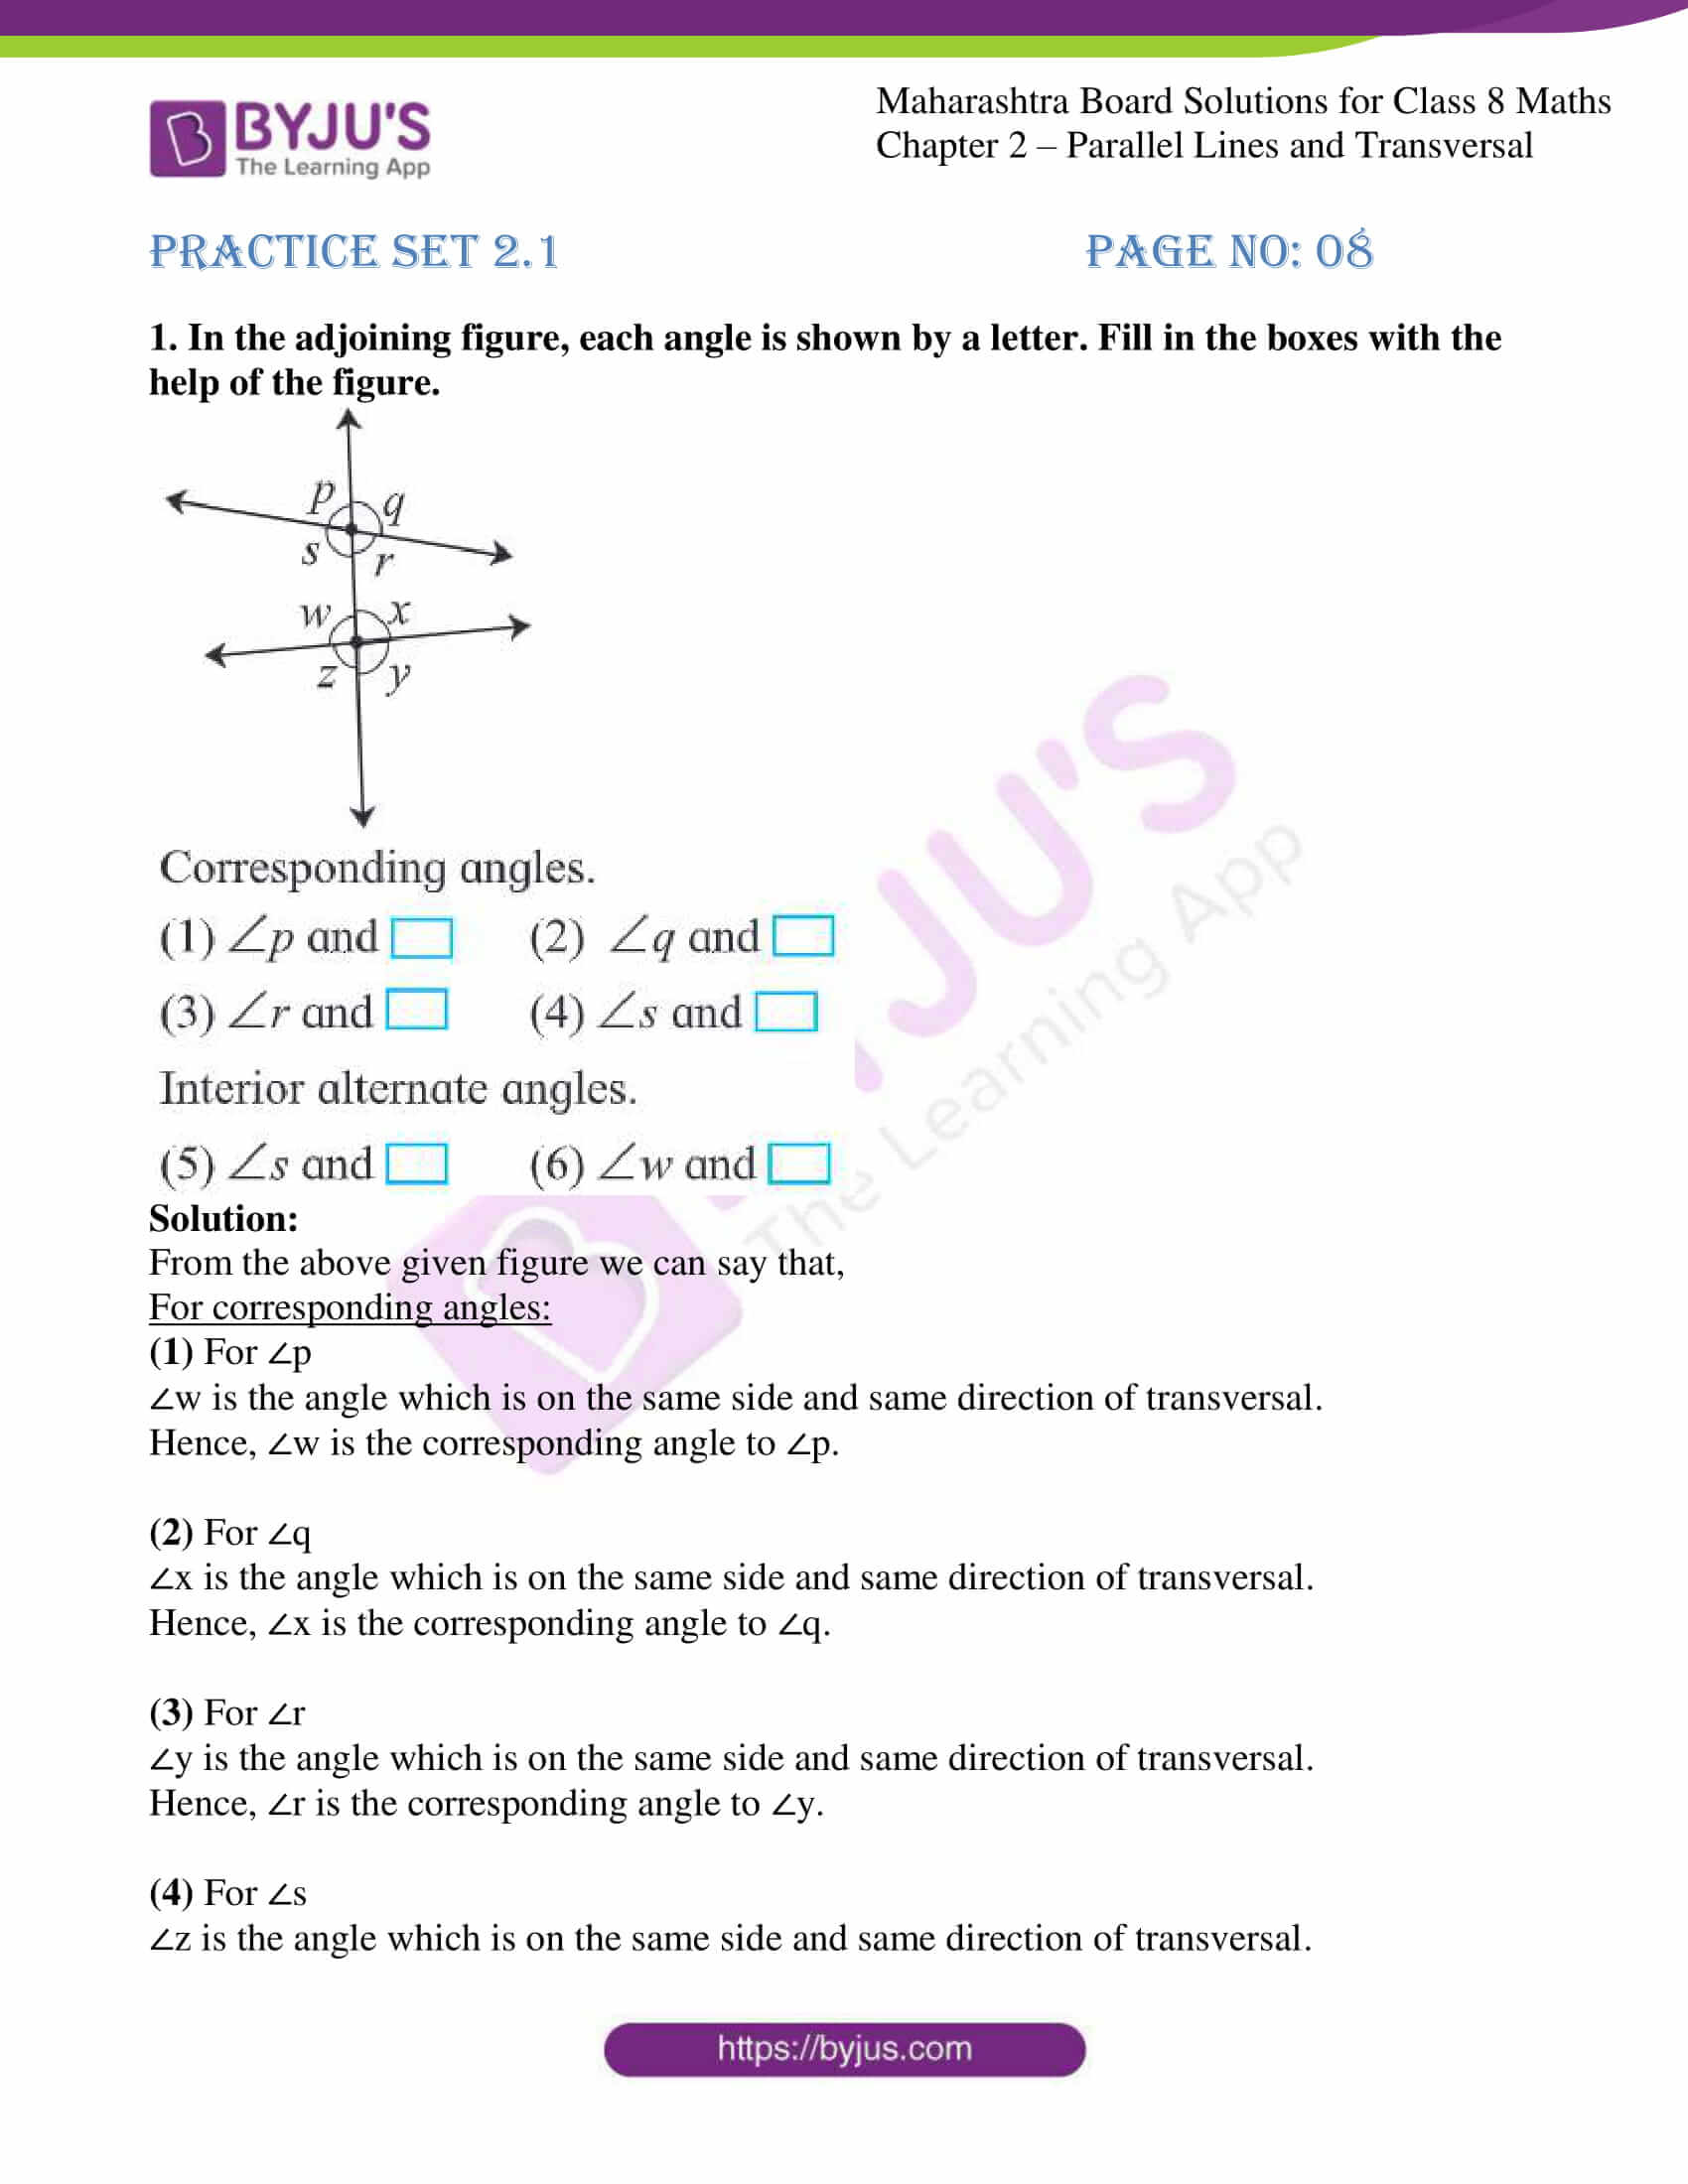 msbshse sol for class 8 maths chapter 2 01